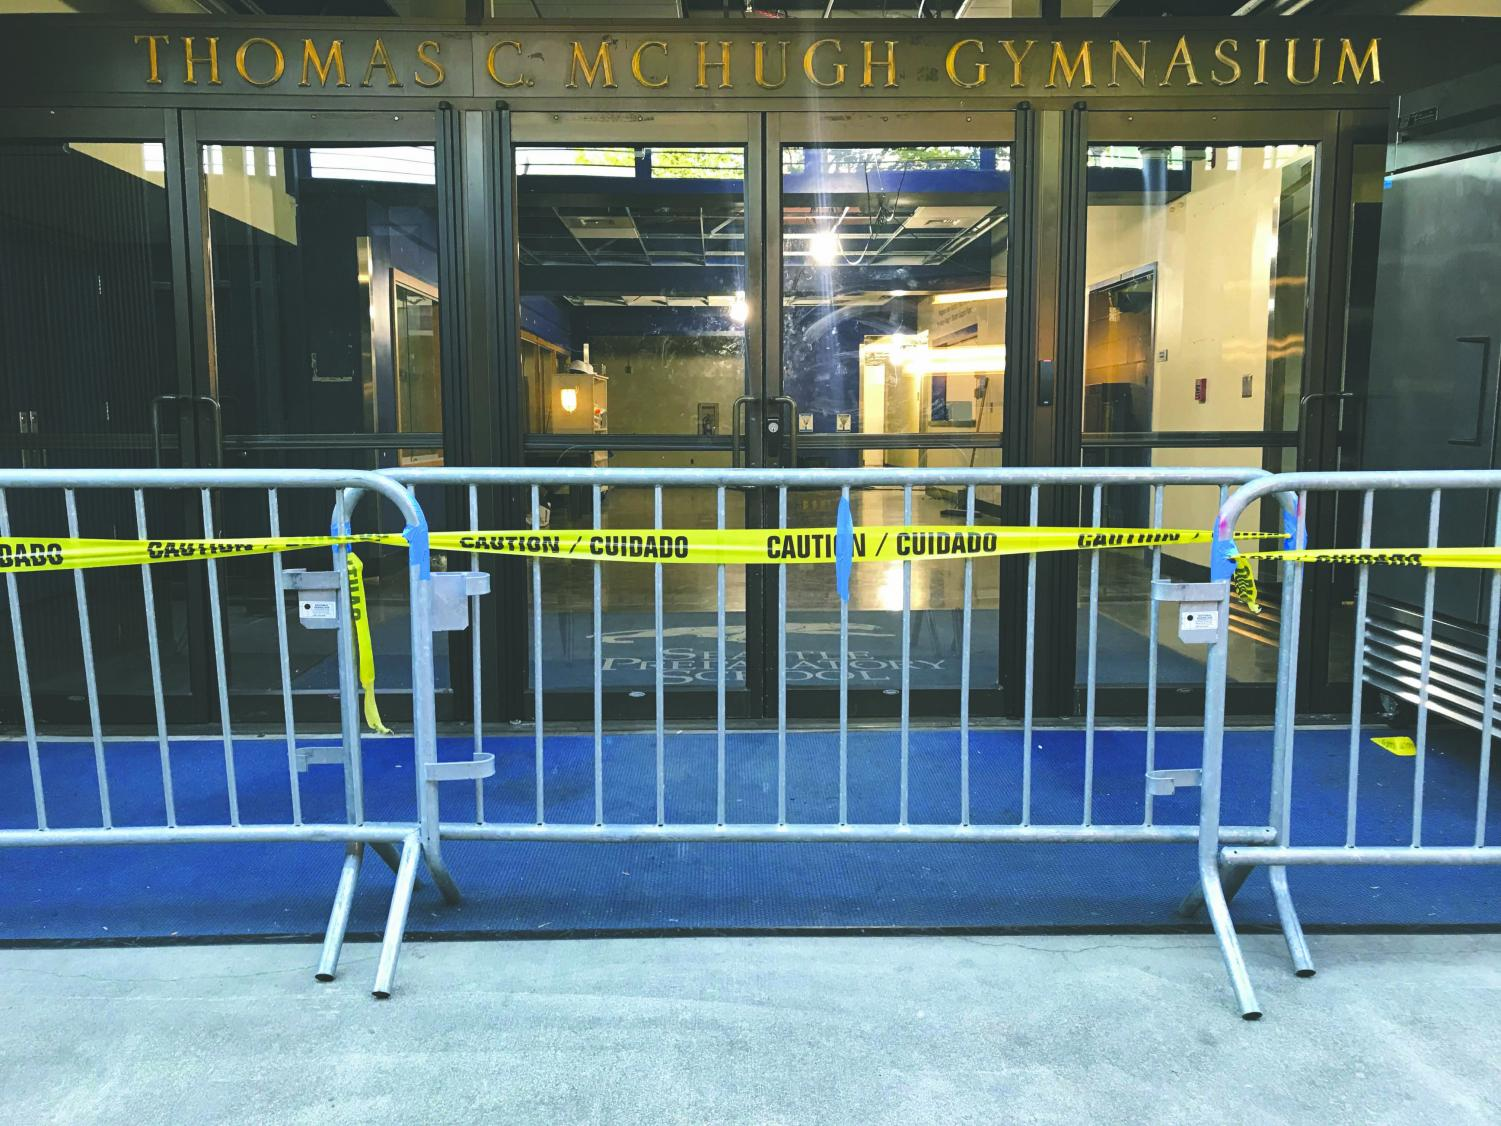 The entrance to T.C. McHugh Gymnasium is currently blocked due to construction. Construction started in May and will continue through August.